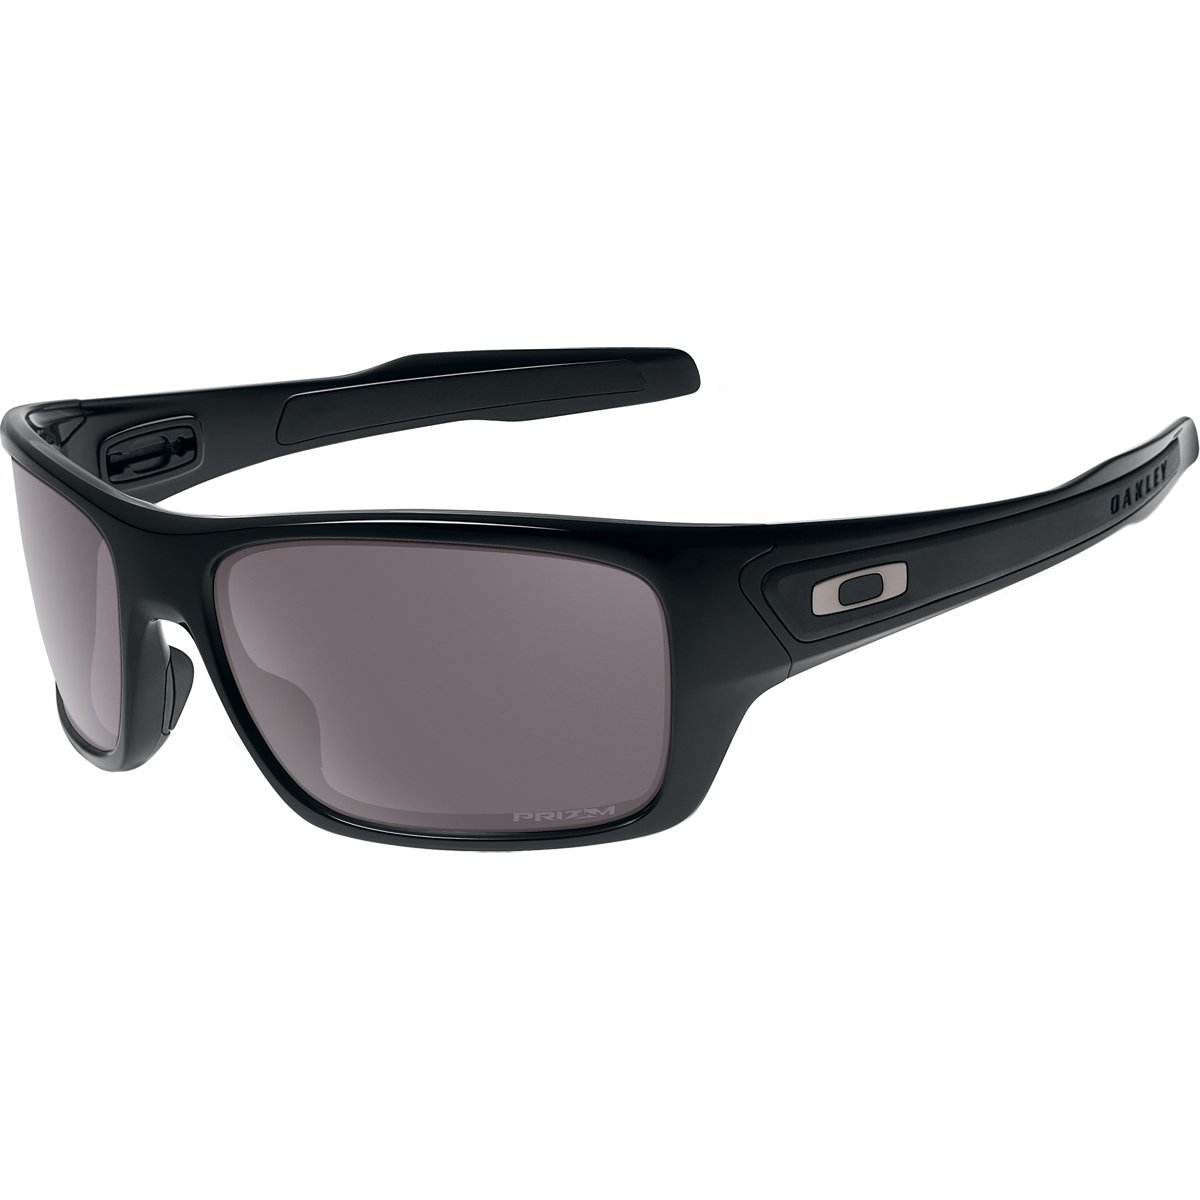 Oakley Men's OO9263 Turbine Rectangular Sunglasses, Polished Black/Prizm Daily Polarized, 65 mm by Oakley